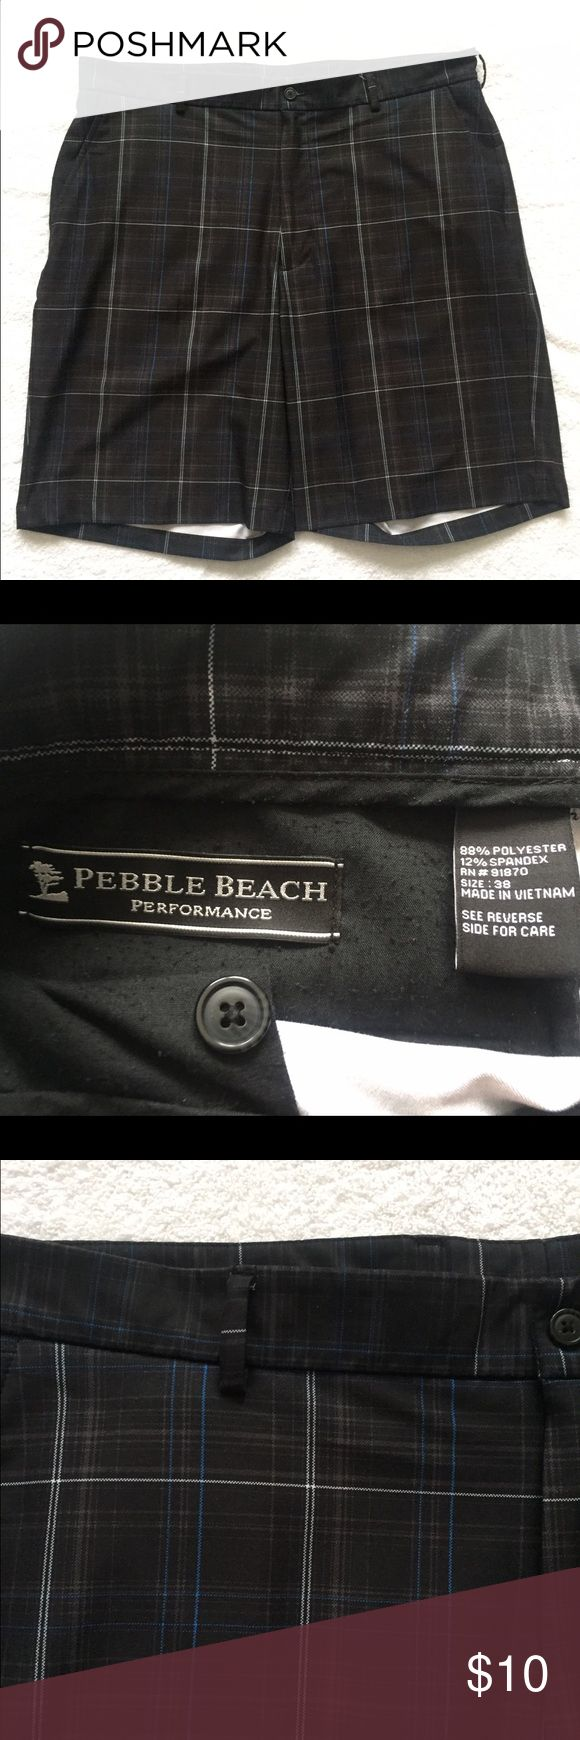 "Pebble Beach Performance shorts Men's Plaid shorts, very good used condition. 38"" waist Pebble Beach Shorts"